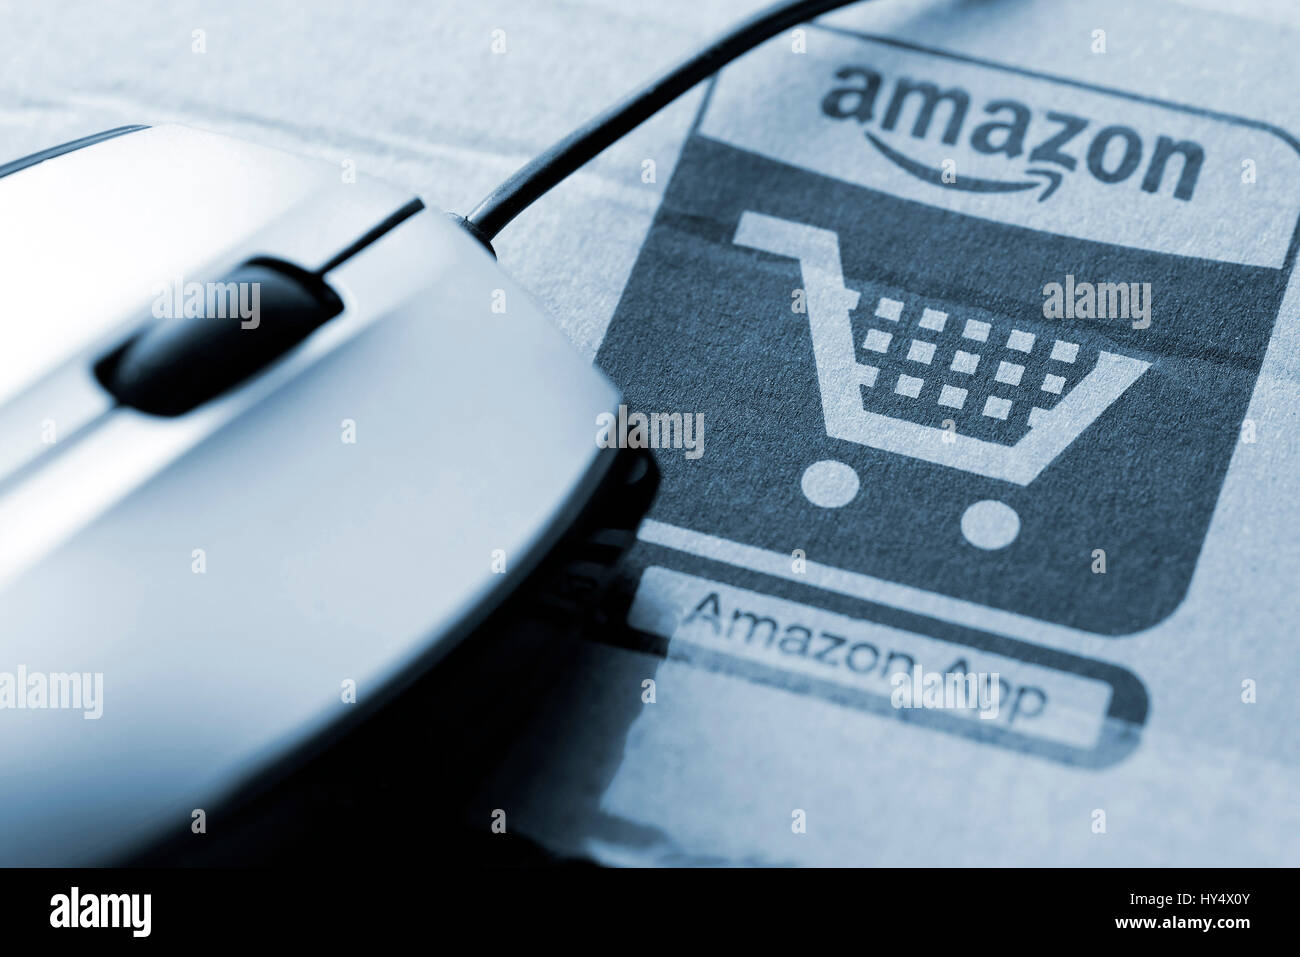 422d51363fee2a Amazon packaging and Computermouse, Amazon-Verpackung und Computermouse -  Stock Image